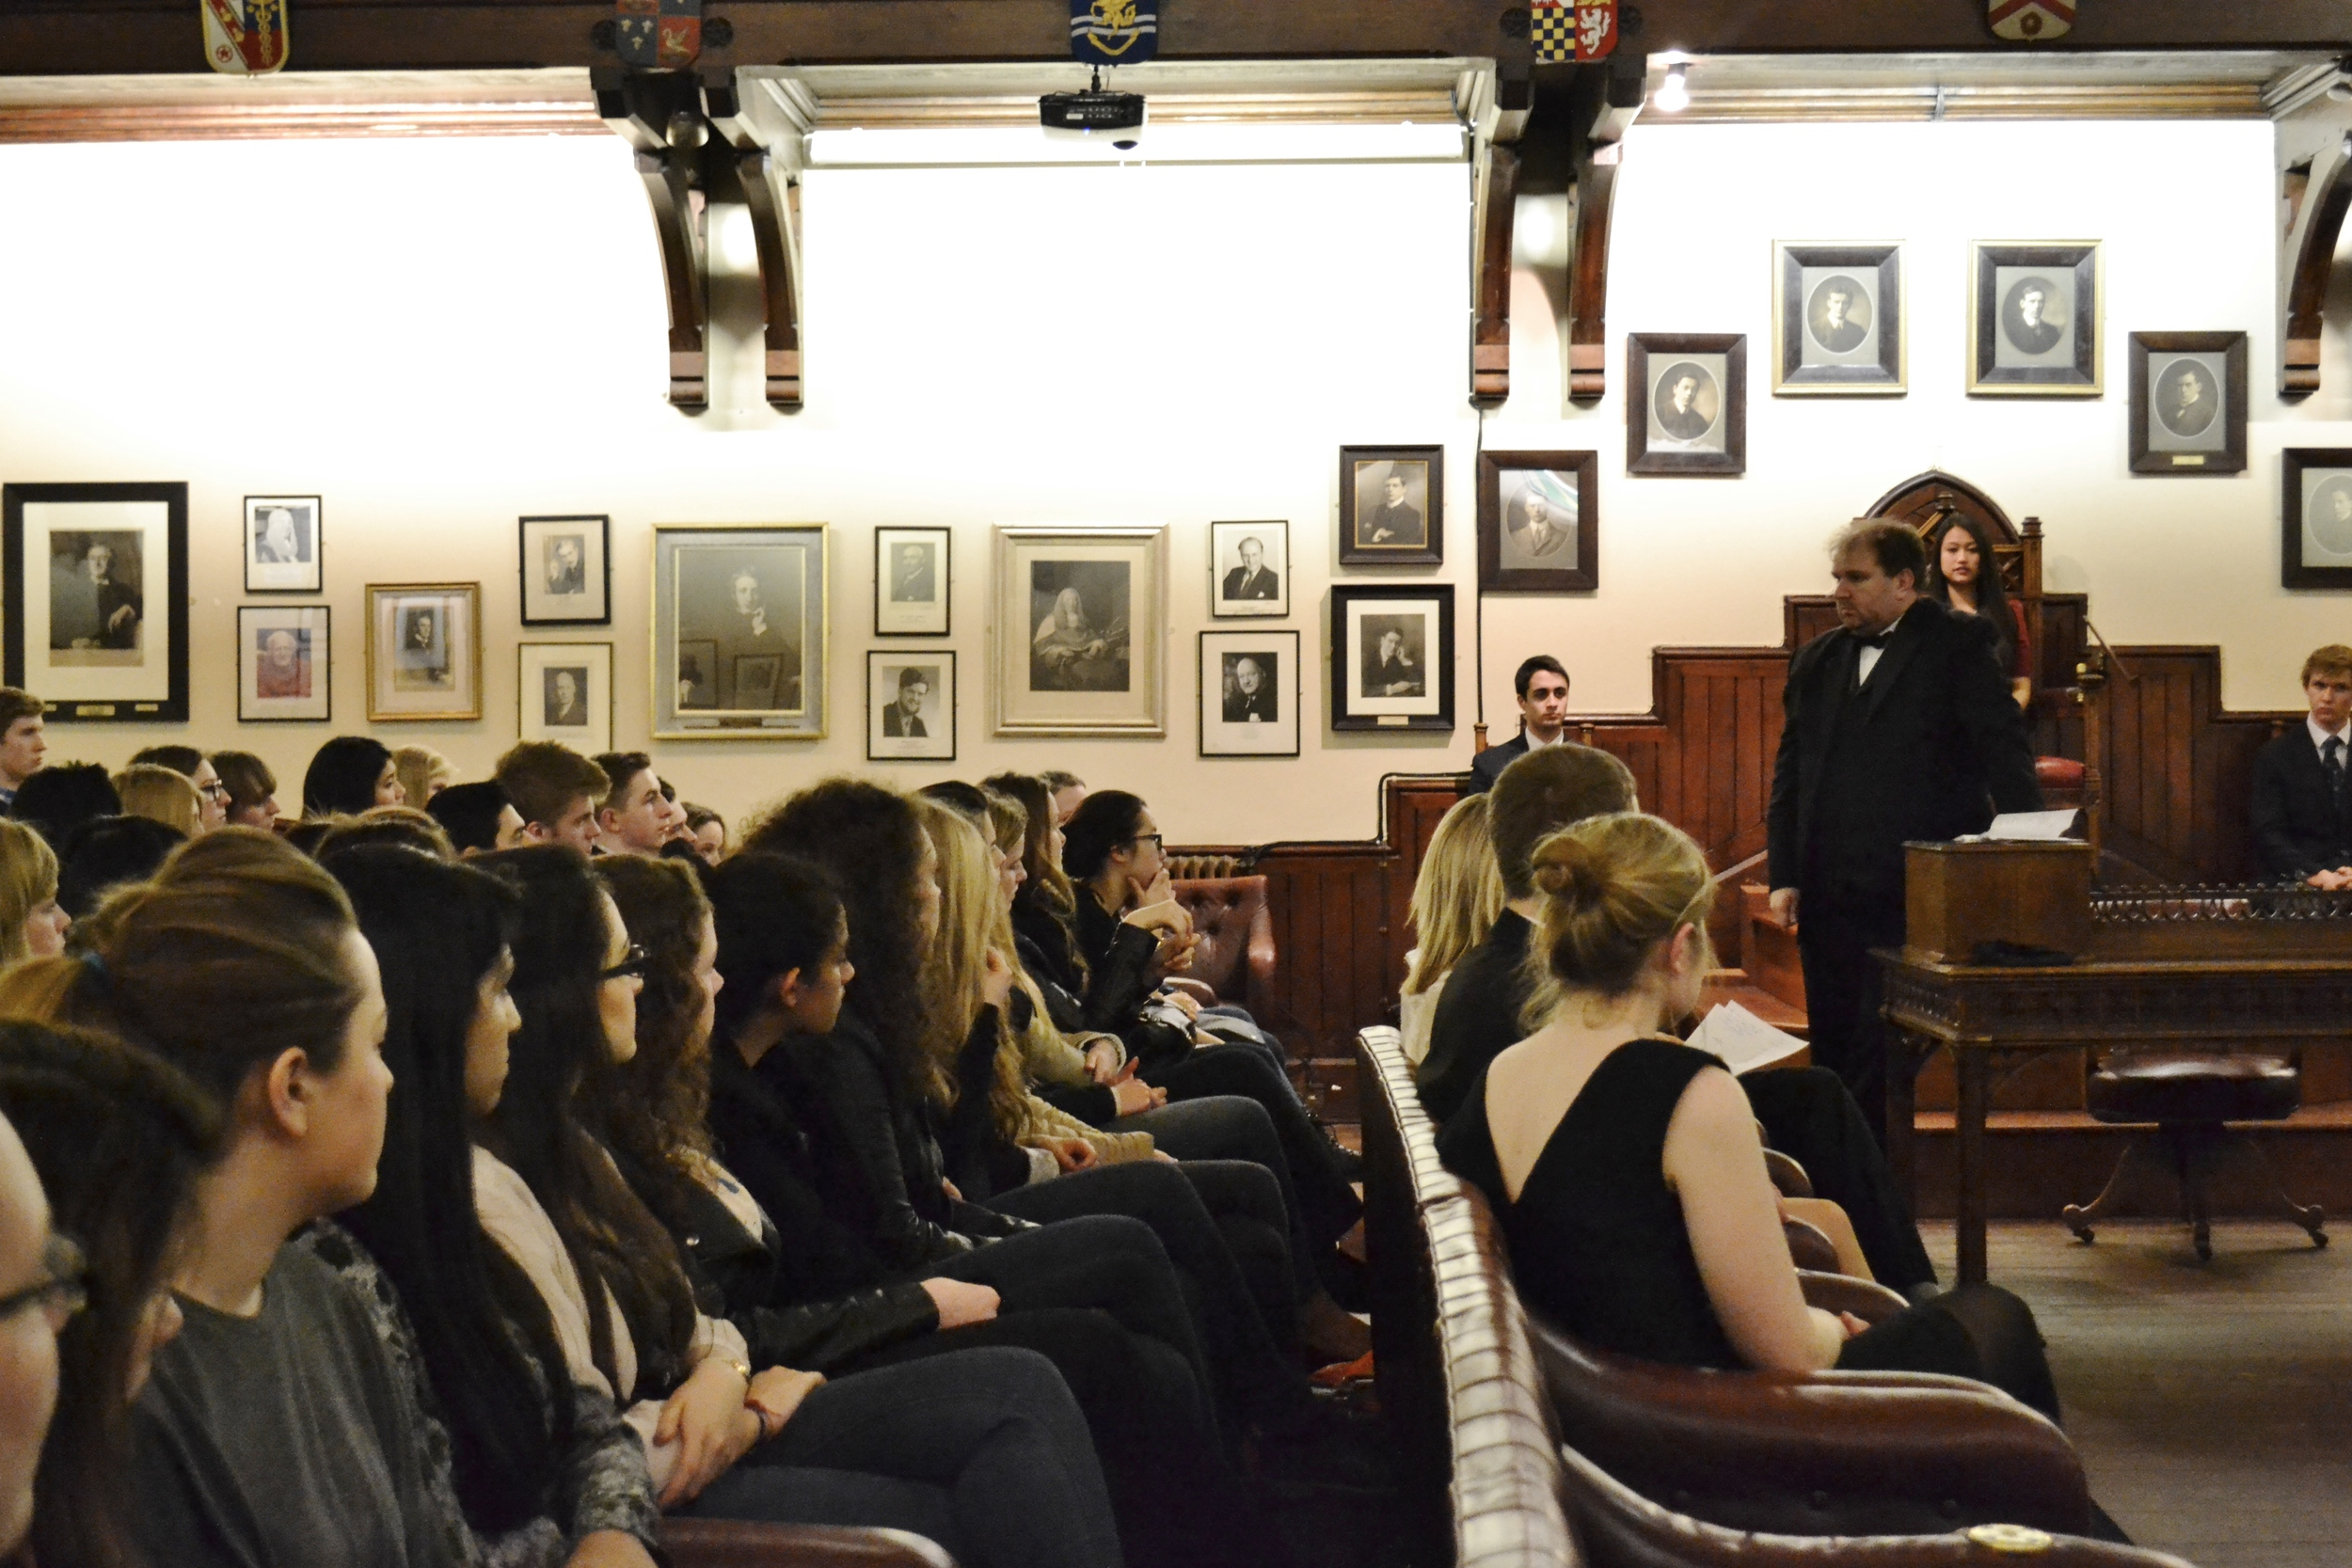 Our Mock Trial is held in the prestigious chamber of the Cambridge Union Society - often the highlight of our delegates' week!